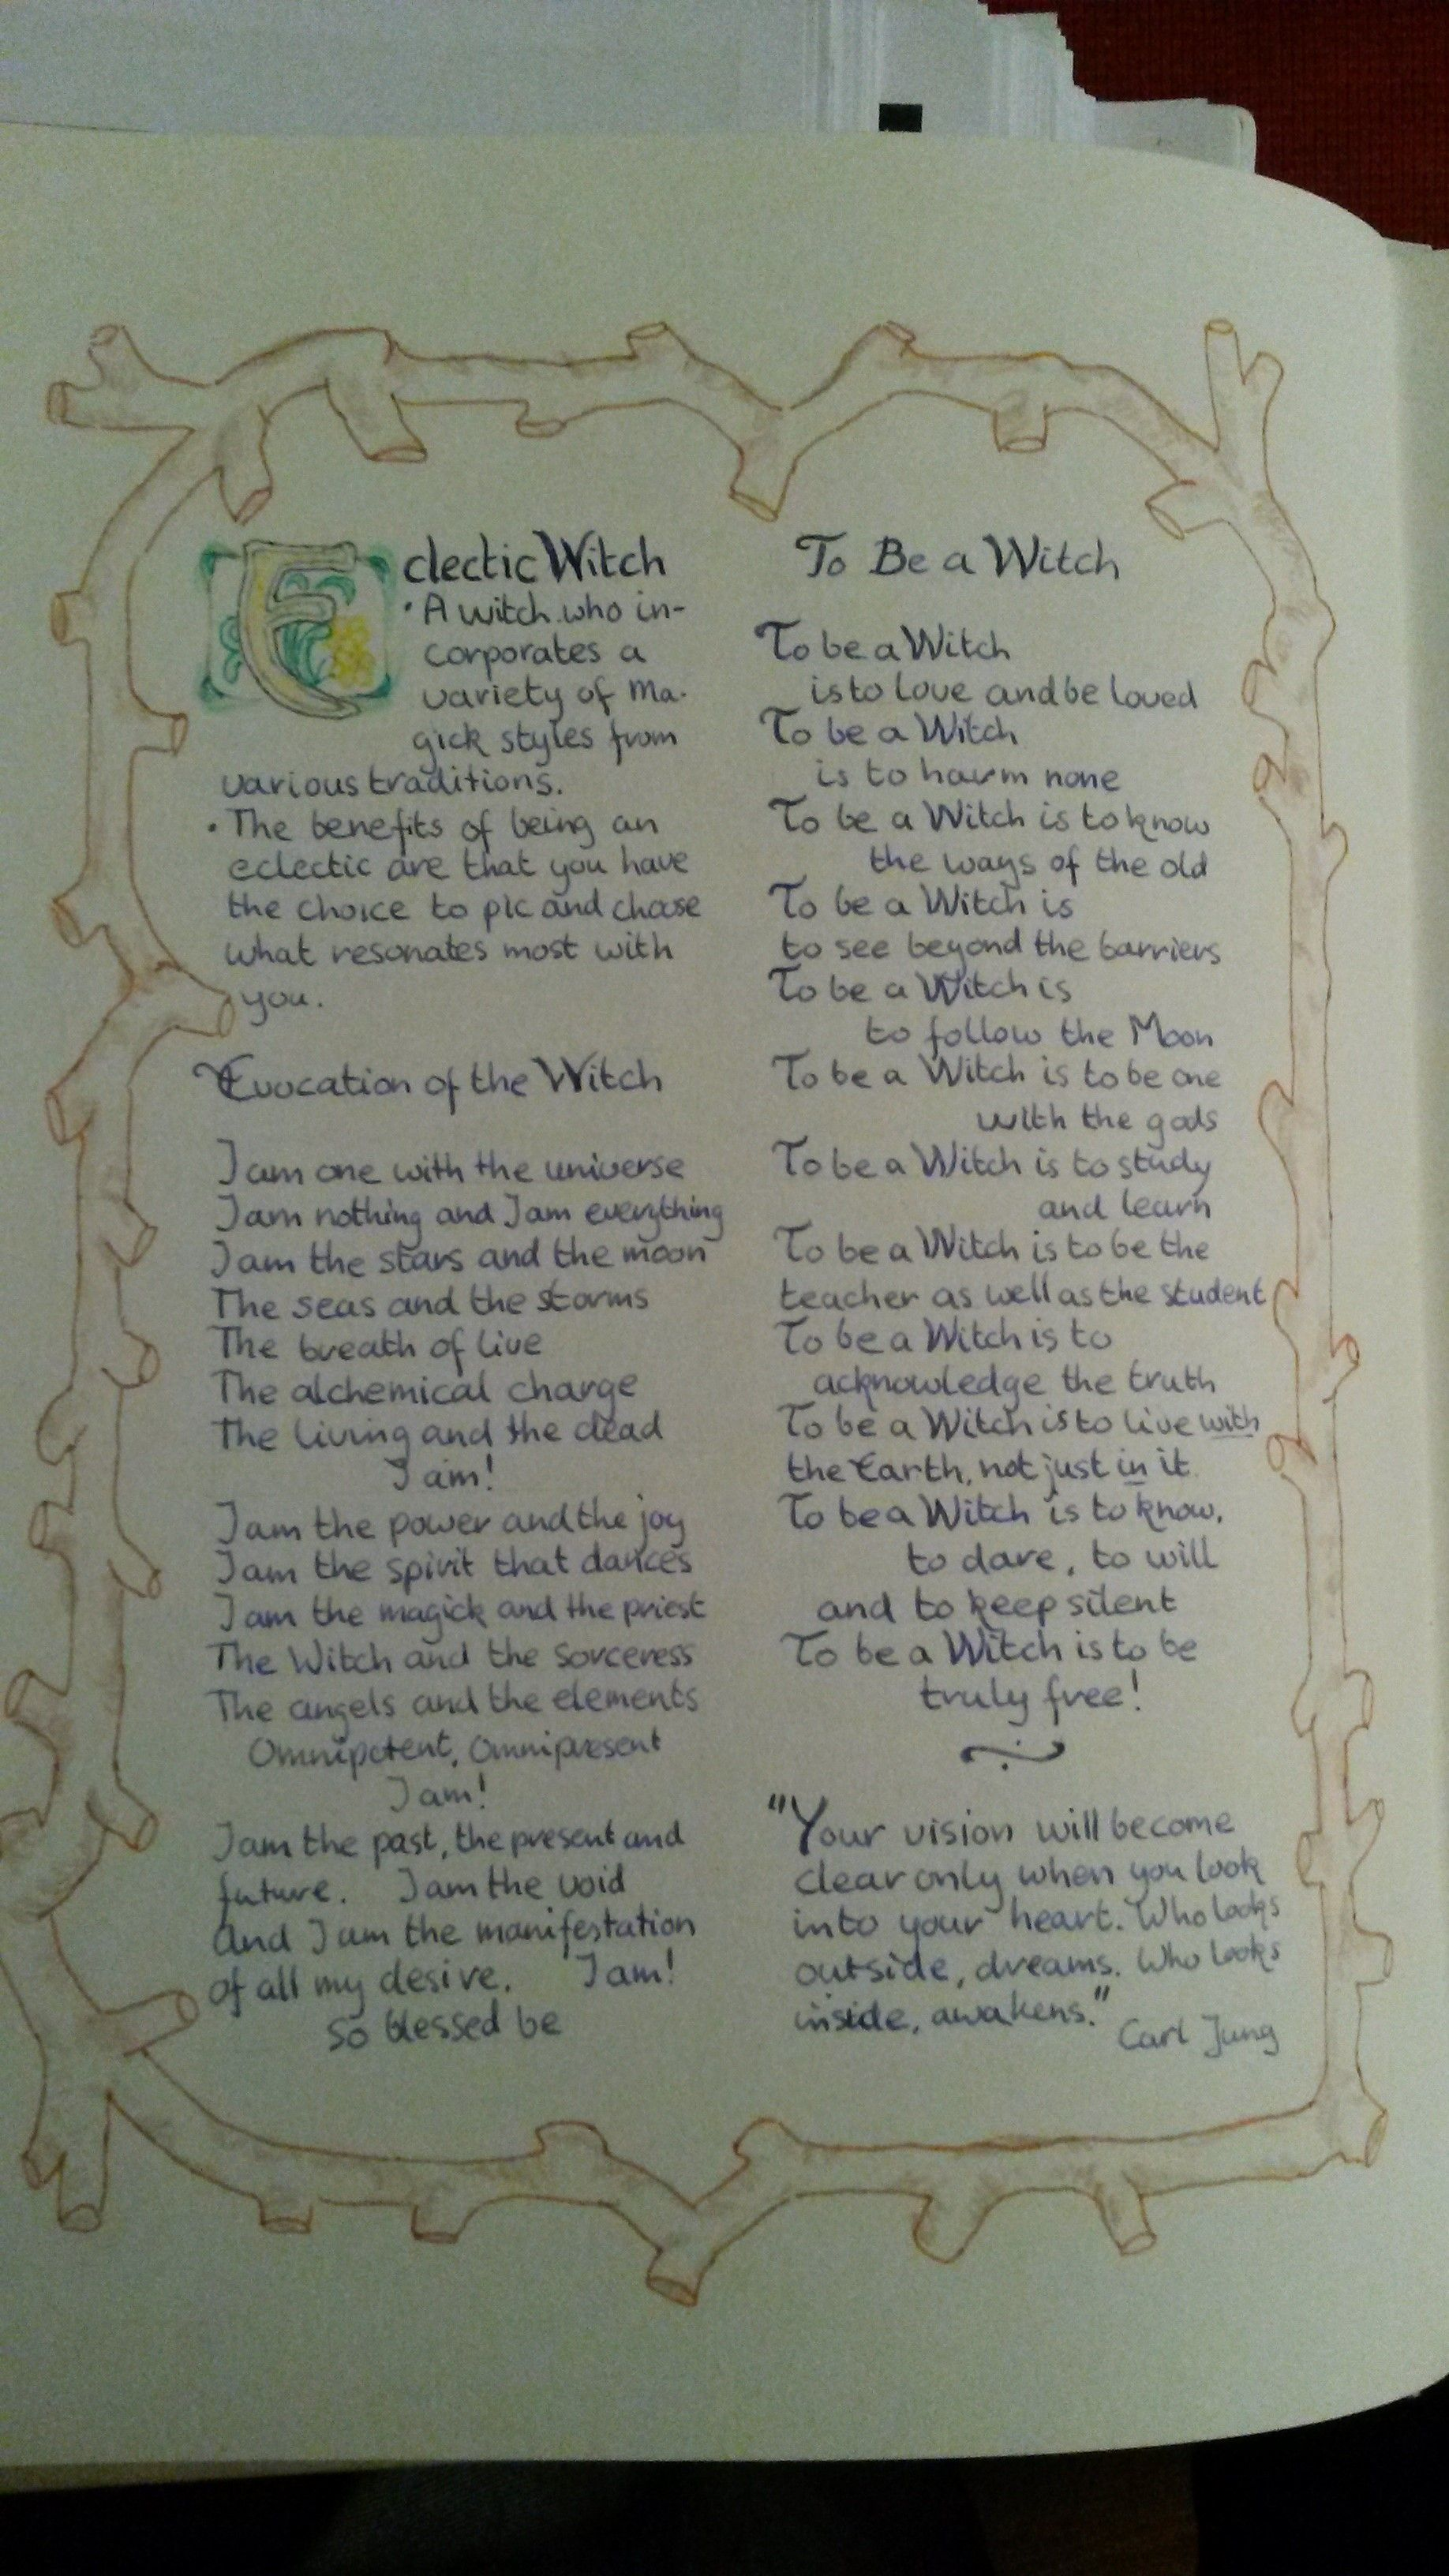 Wiccan Witches Types - Year of Clean Water